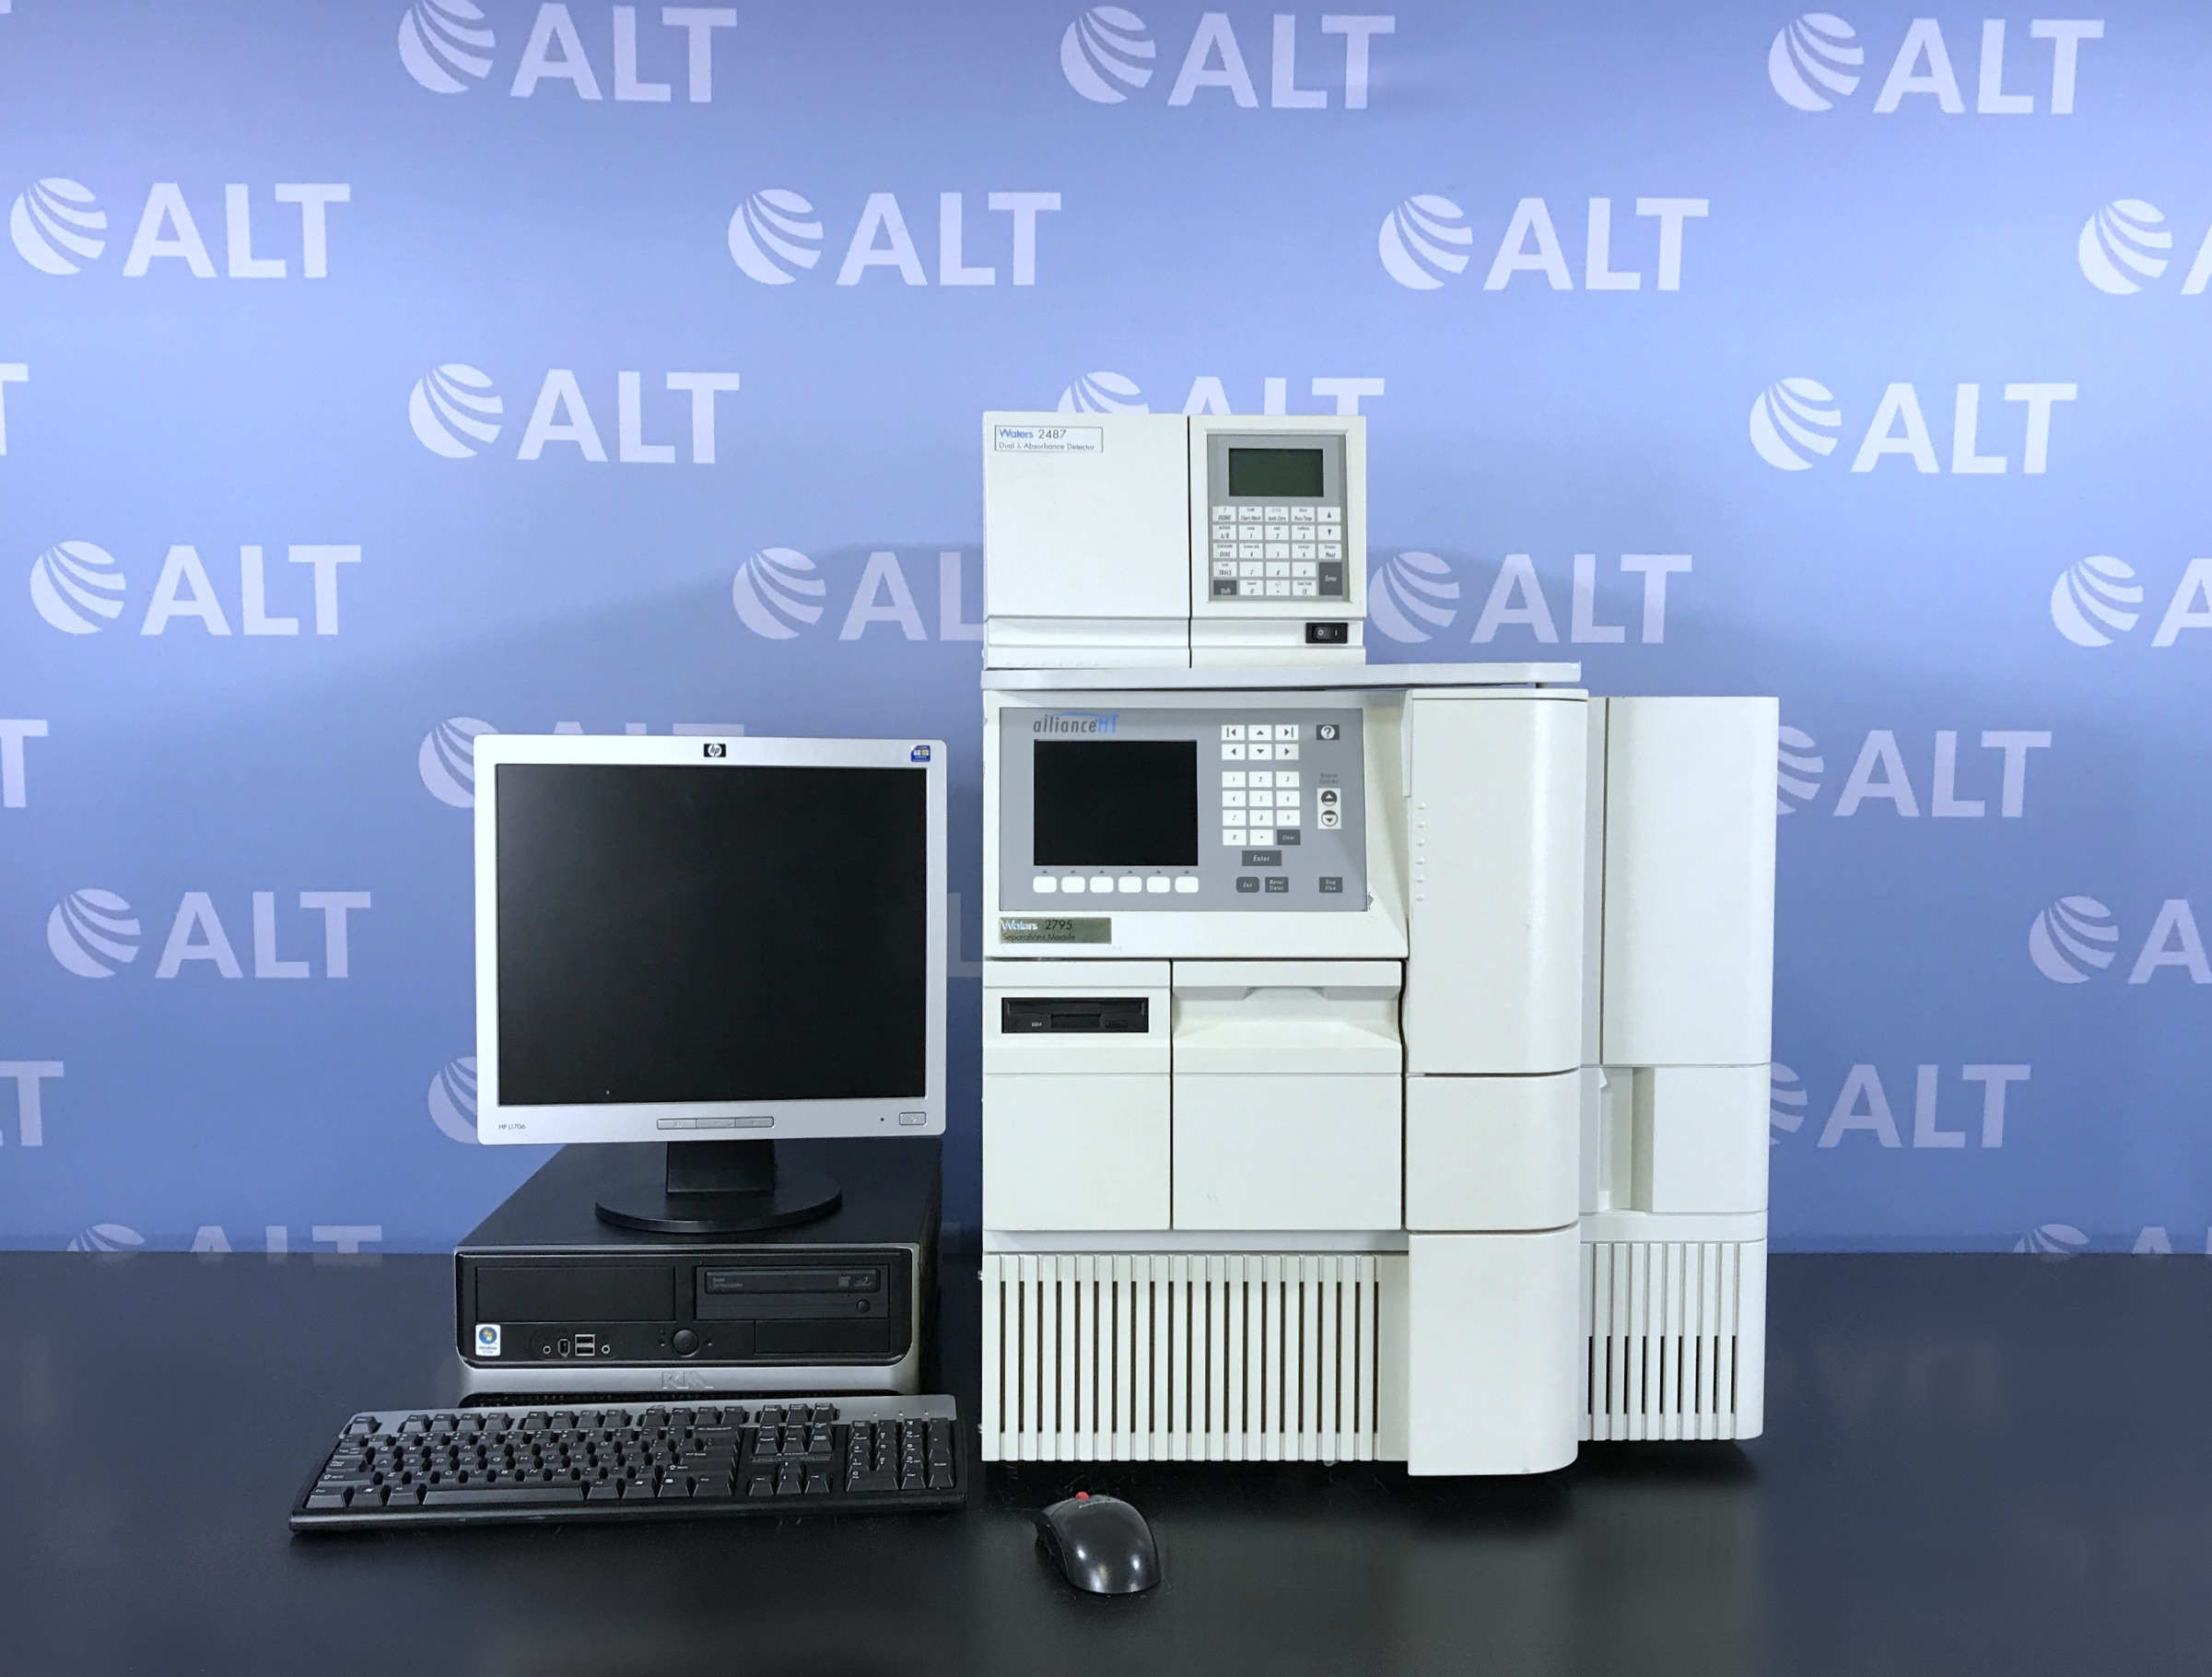 Waters Alliance 2795 HPLC with 2487 Dual Absorbance Detector Image